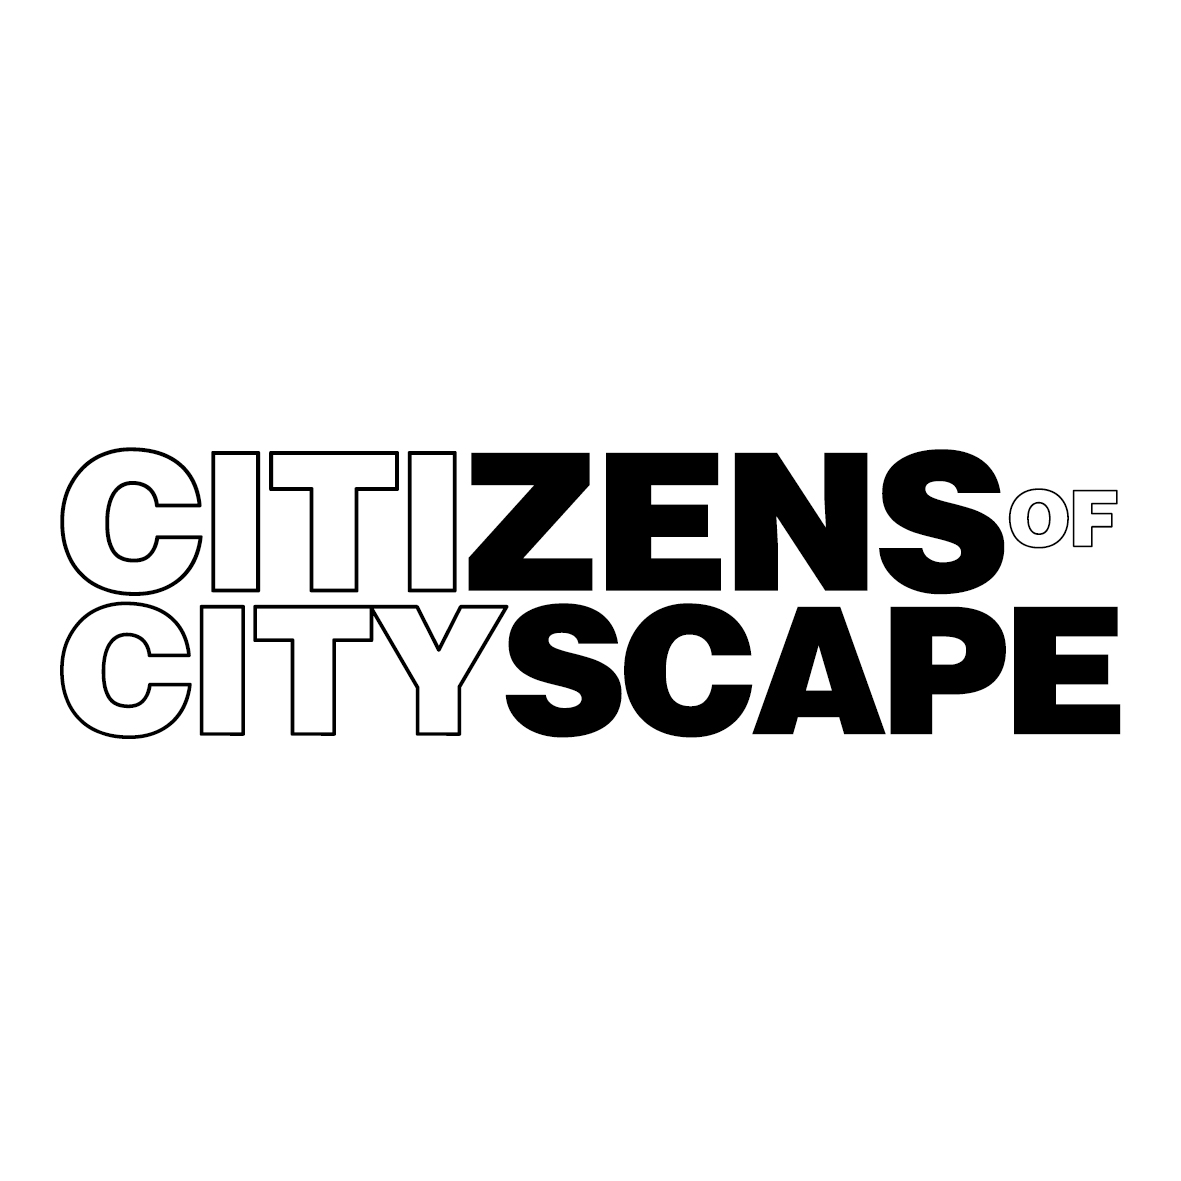 Citizens of Cityscape – 2 giorni dopo / 2 days after.